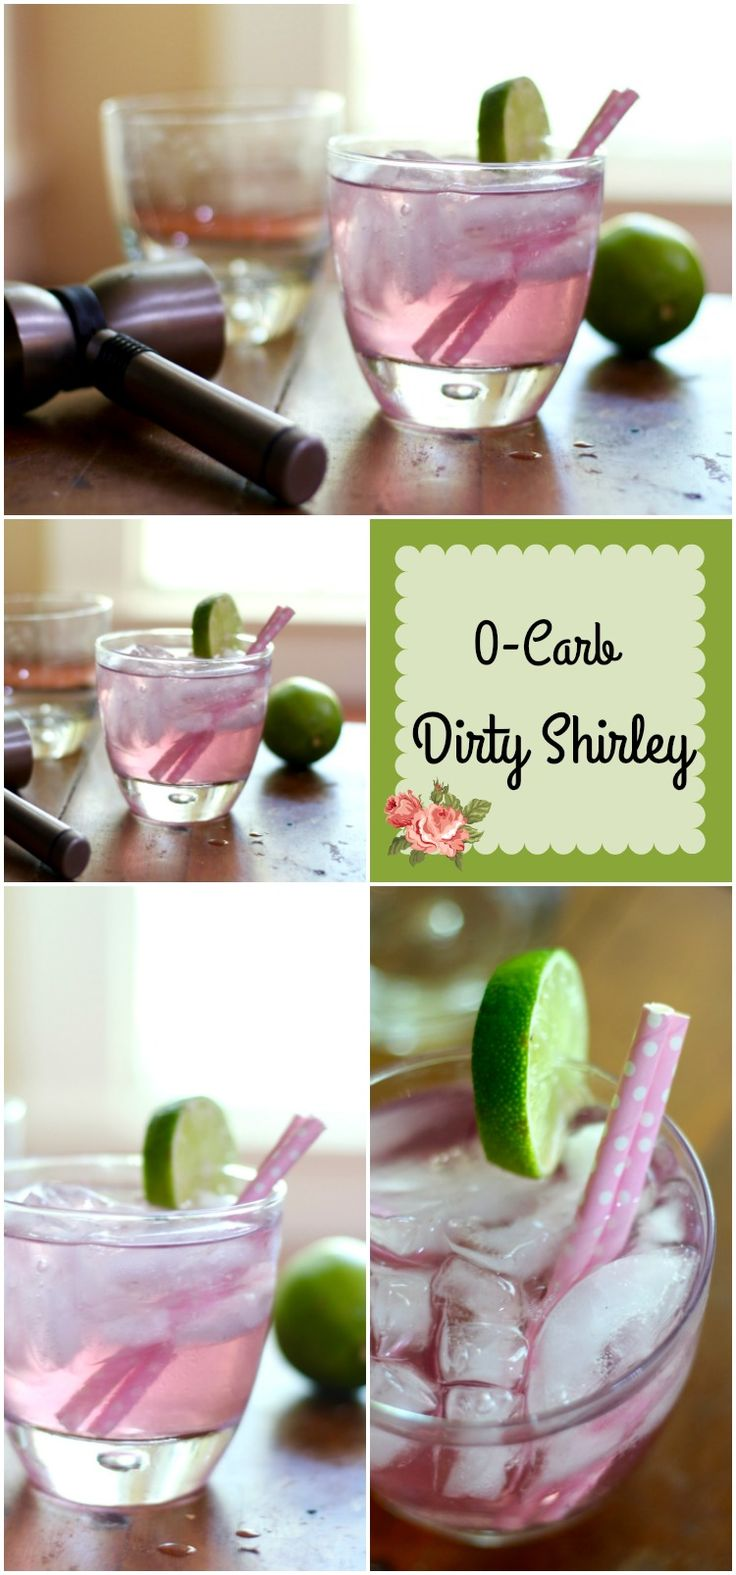 This low carb Dirty Shirley cocktail is sweet and bubbly. 0 carbs and perfect for your next girls' night out! From Lowcarb-ology.com